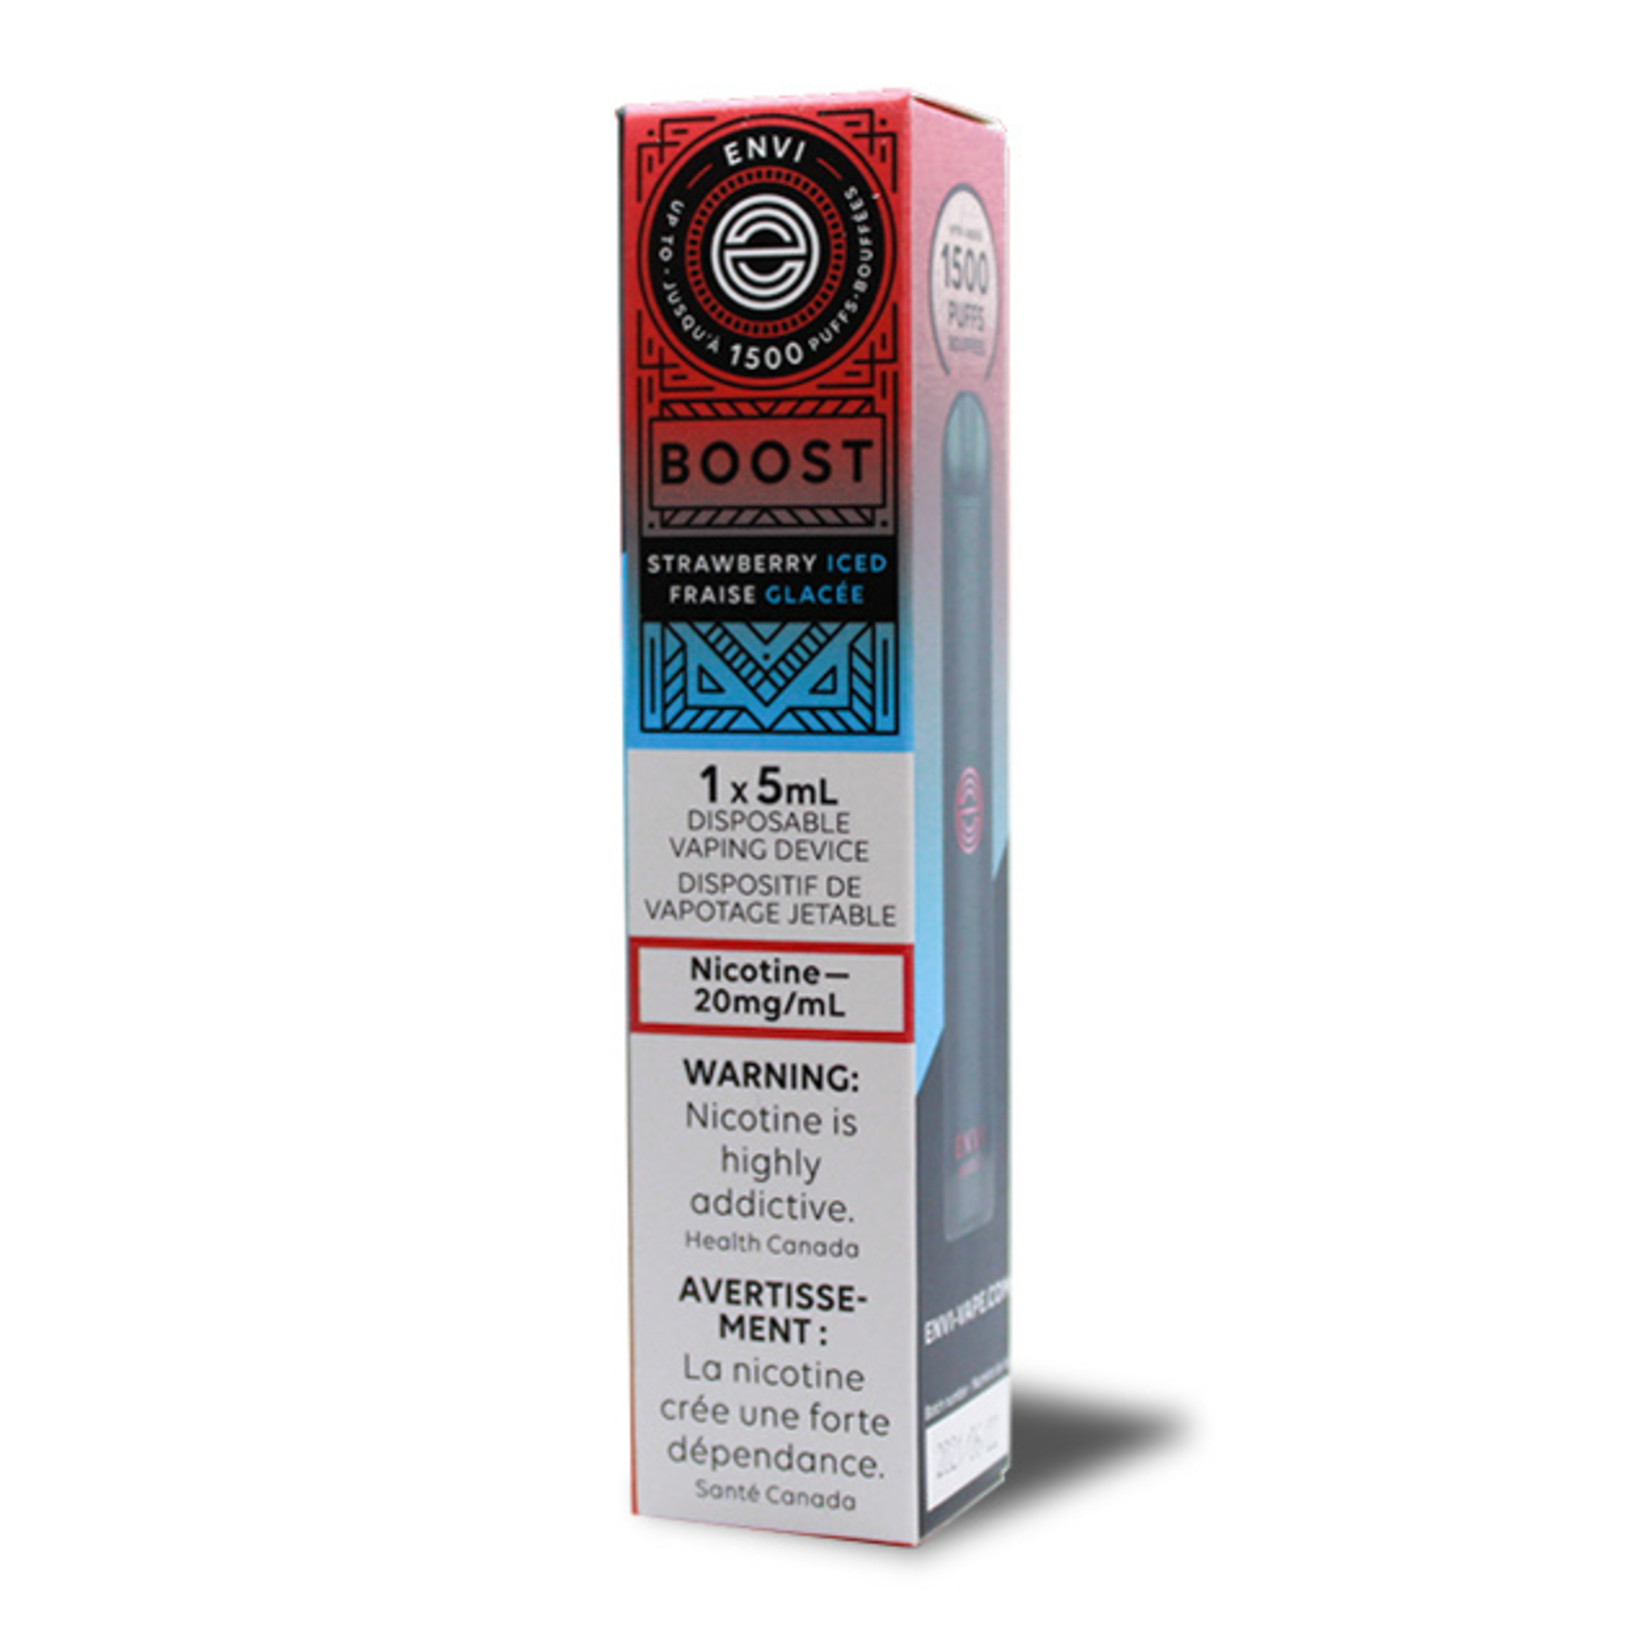 Envi BOOST 1500 Puff Disposable Device Strawberry Iced